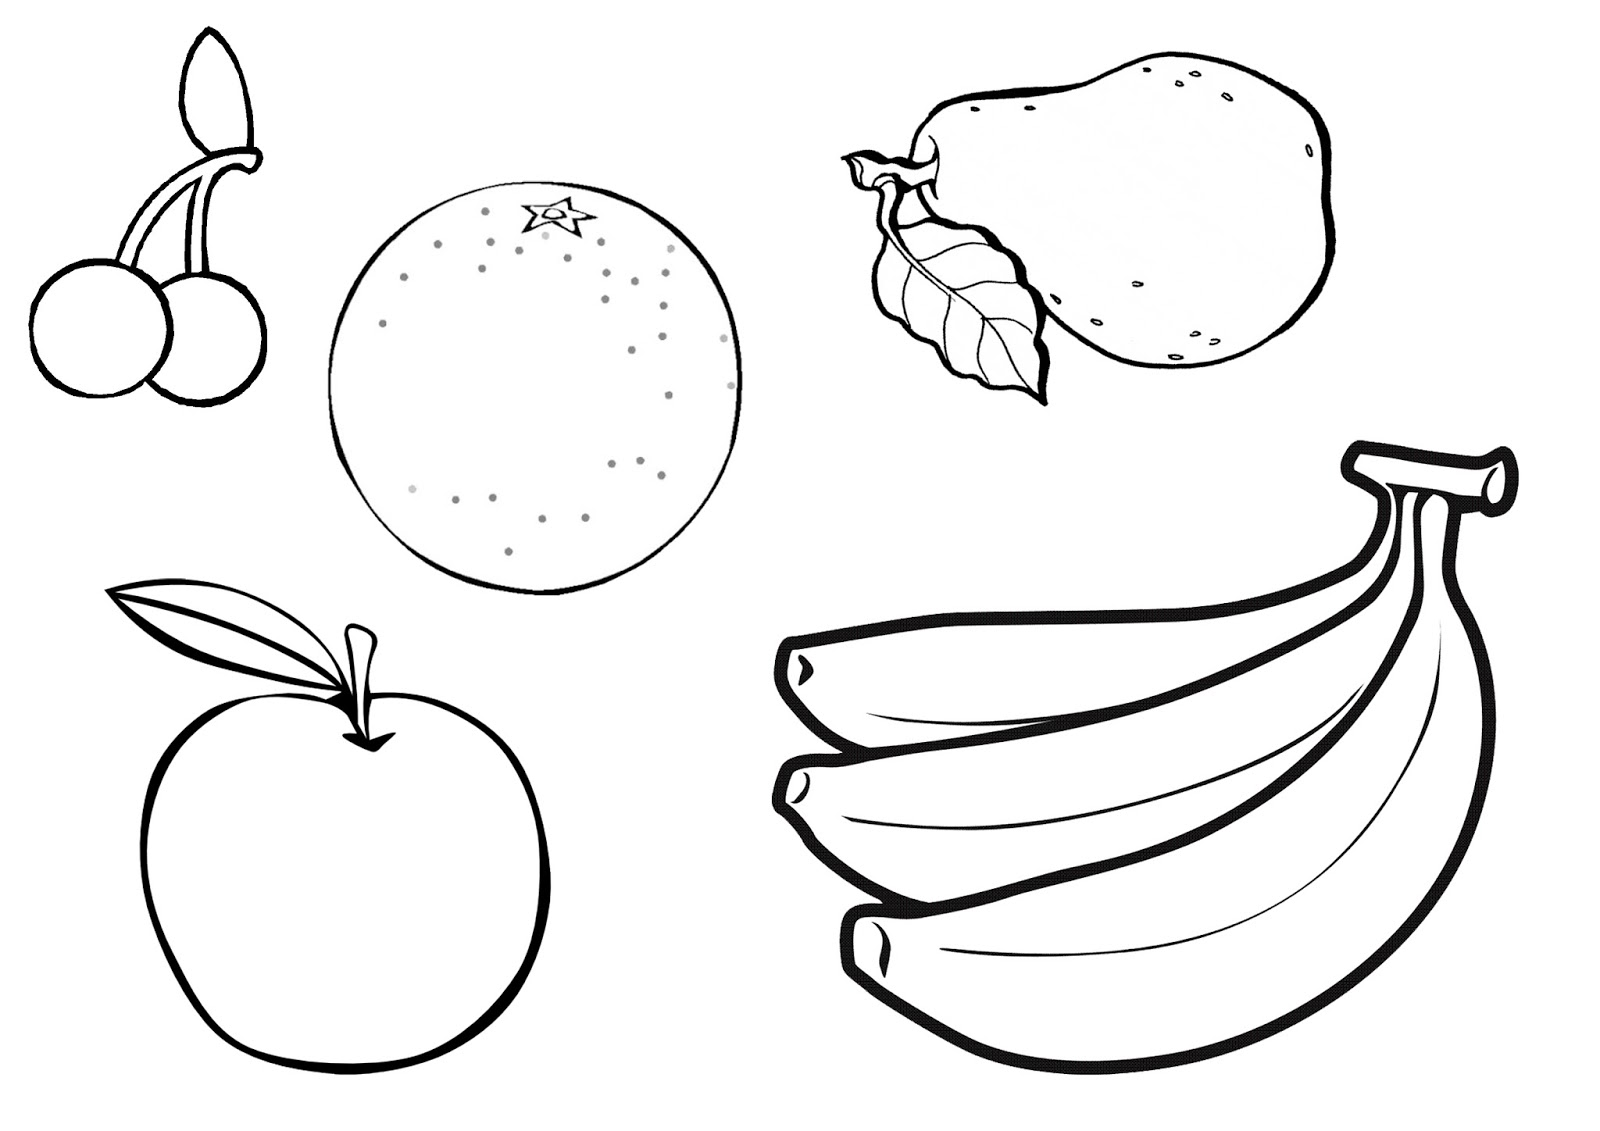 coloring pages fruit printable healthy eating chart coloring pages fruit pages coloring